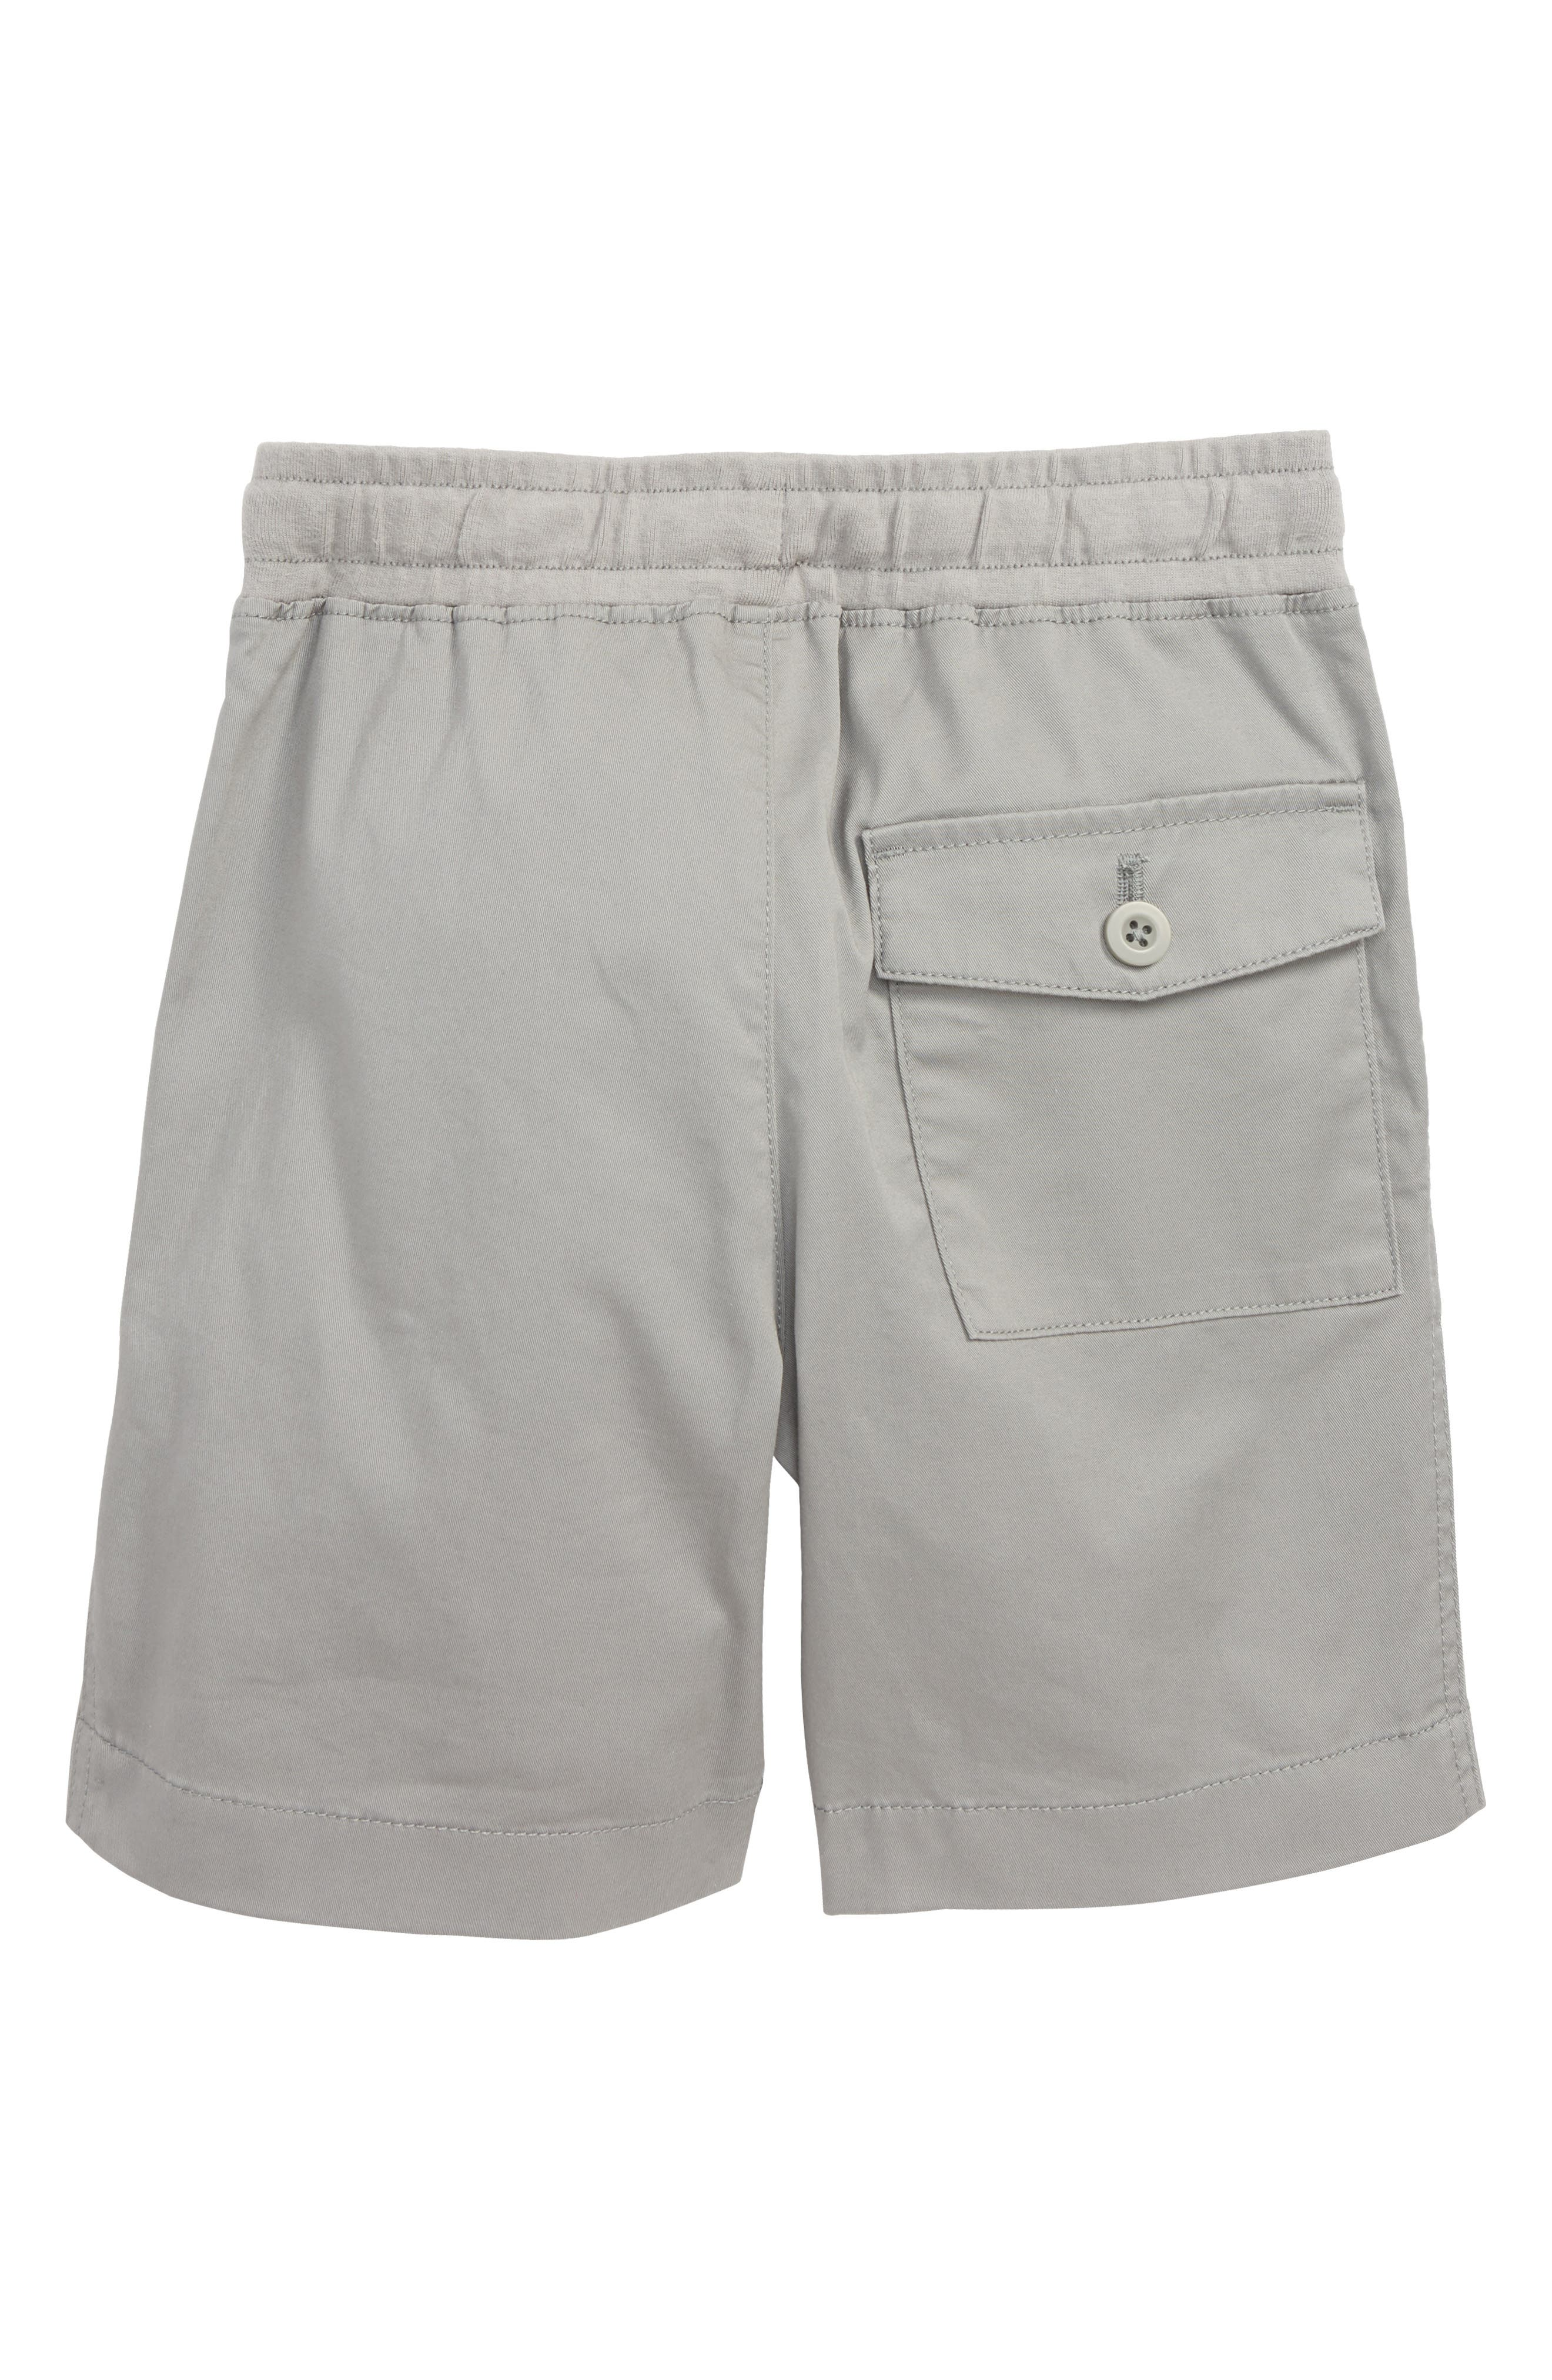 Stretch Pull-On Shorts,                             Alternate thumbnail 2, color,                             020